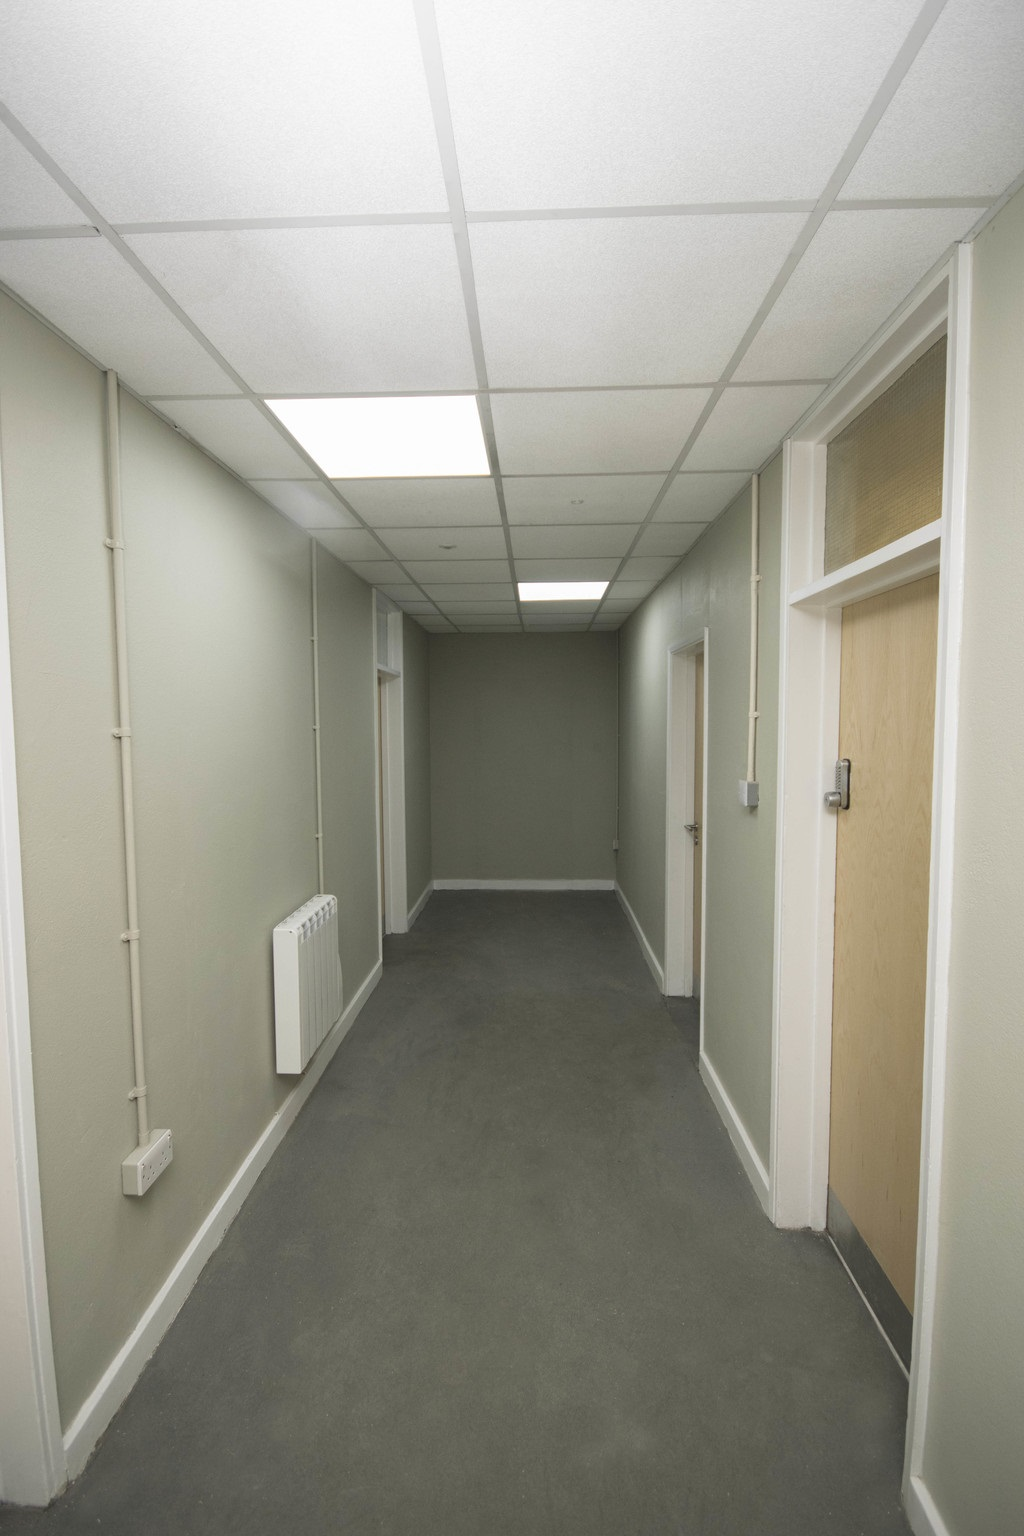 Hall to service office